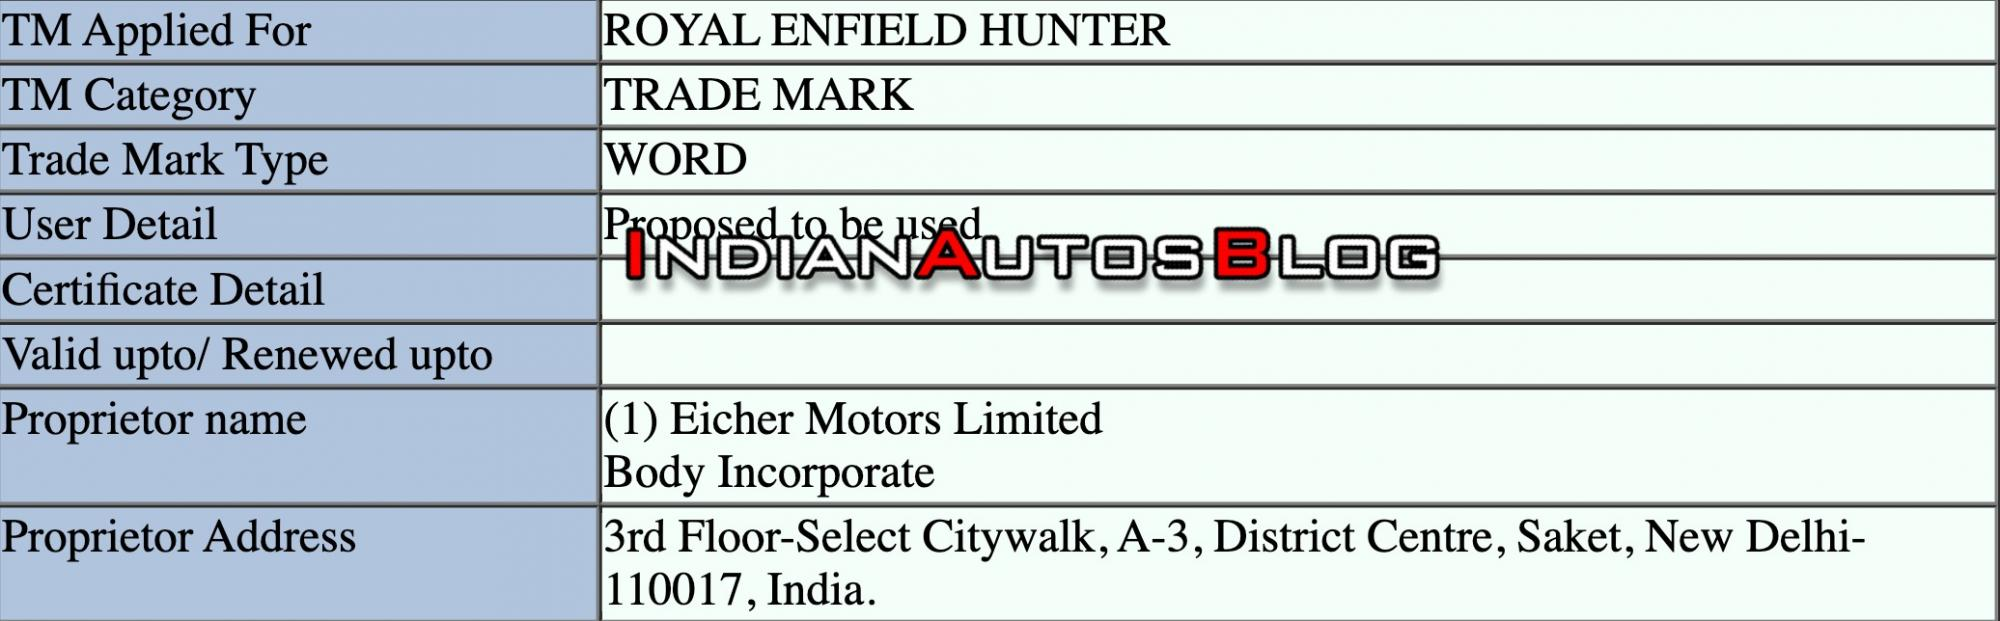 royal-enfield-hunter-trademark-application-leaked